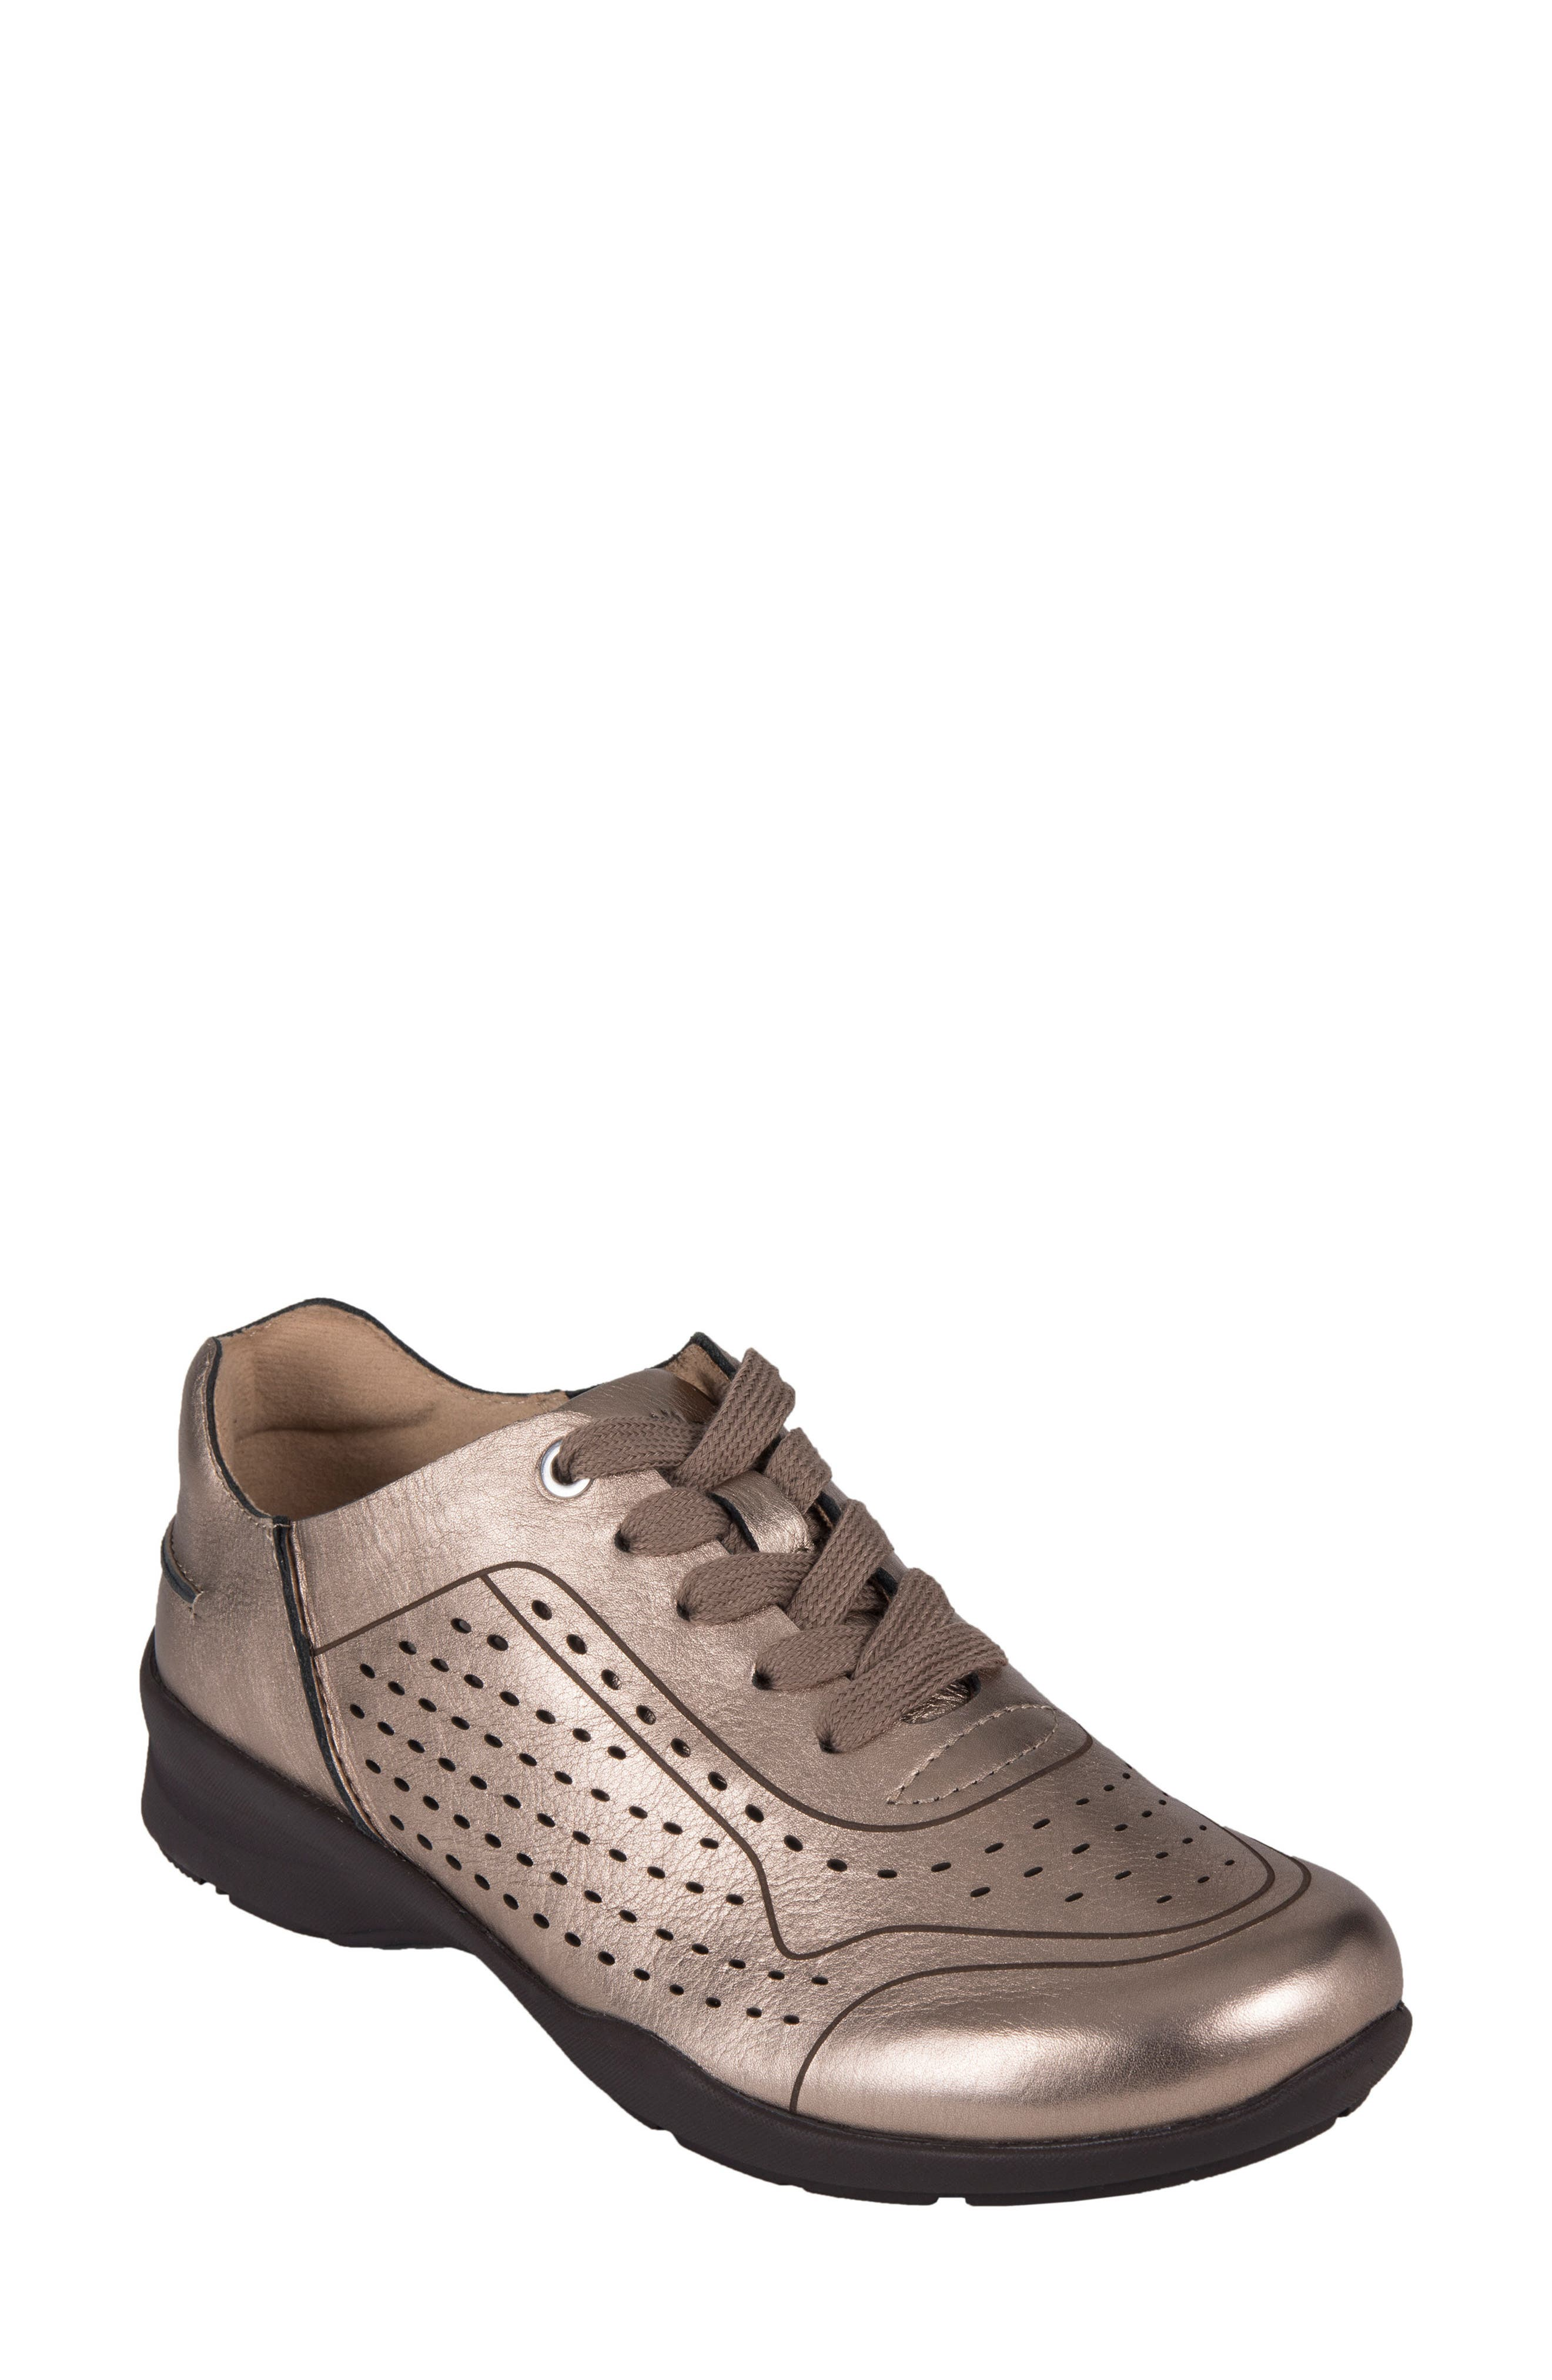 Serval Perforated Sneaker,                         Main,                         color, Champagne Metallic Leather